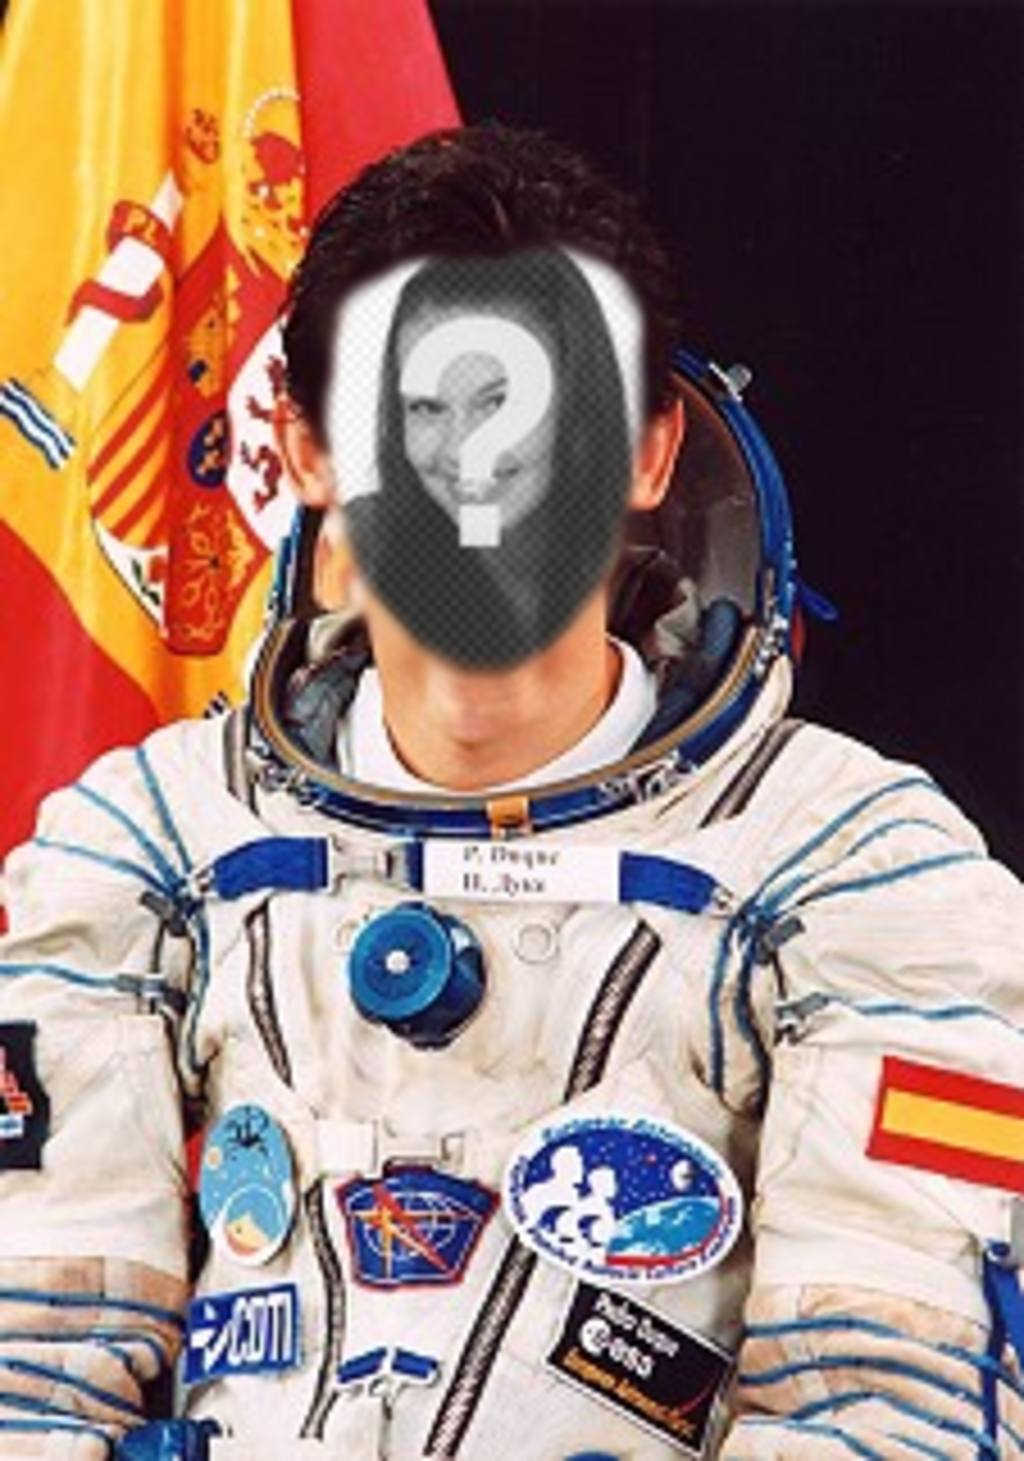 Photo effect where you can put your face on the body of Pedro Duque, Spanish astronaut